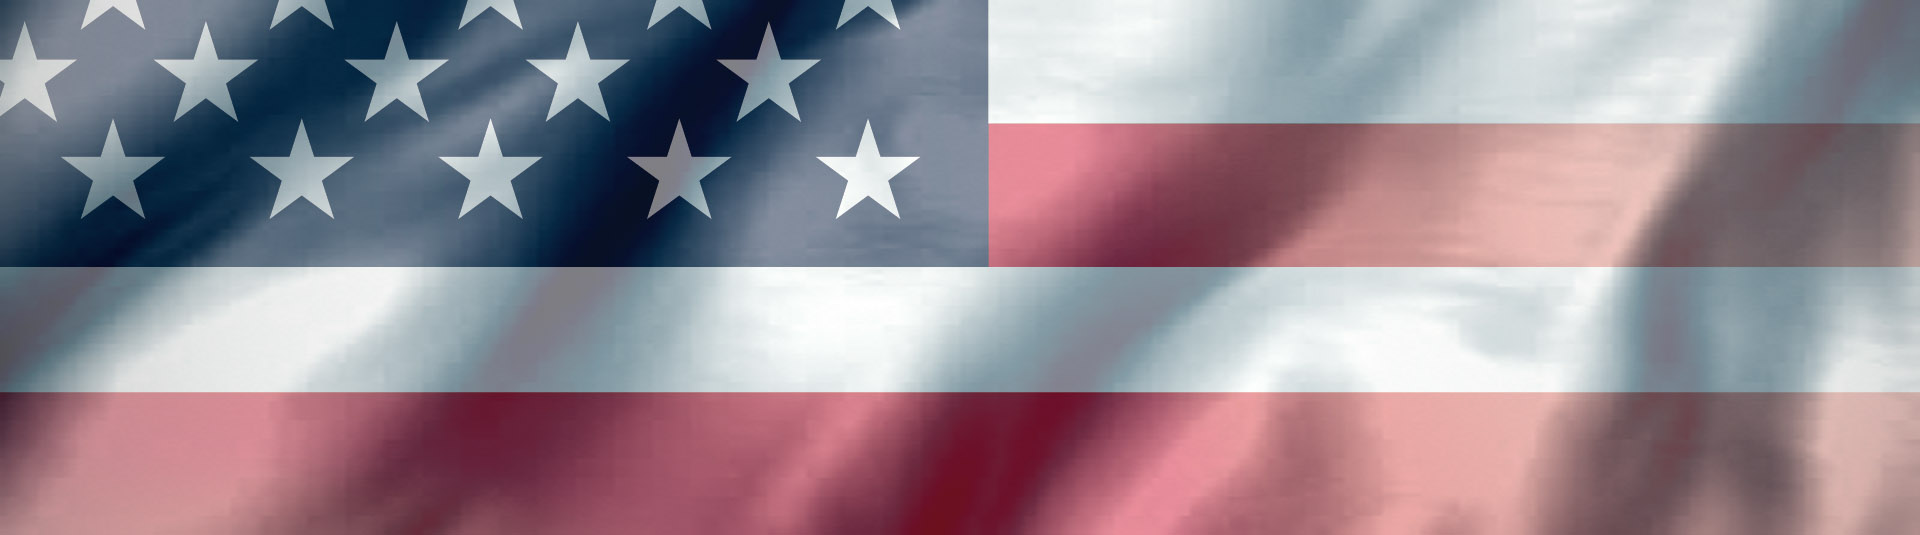 flag-background